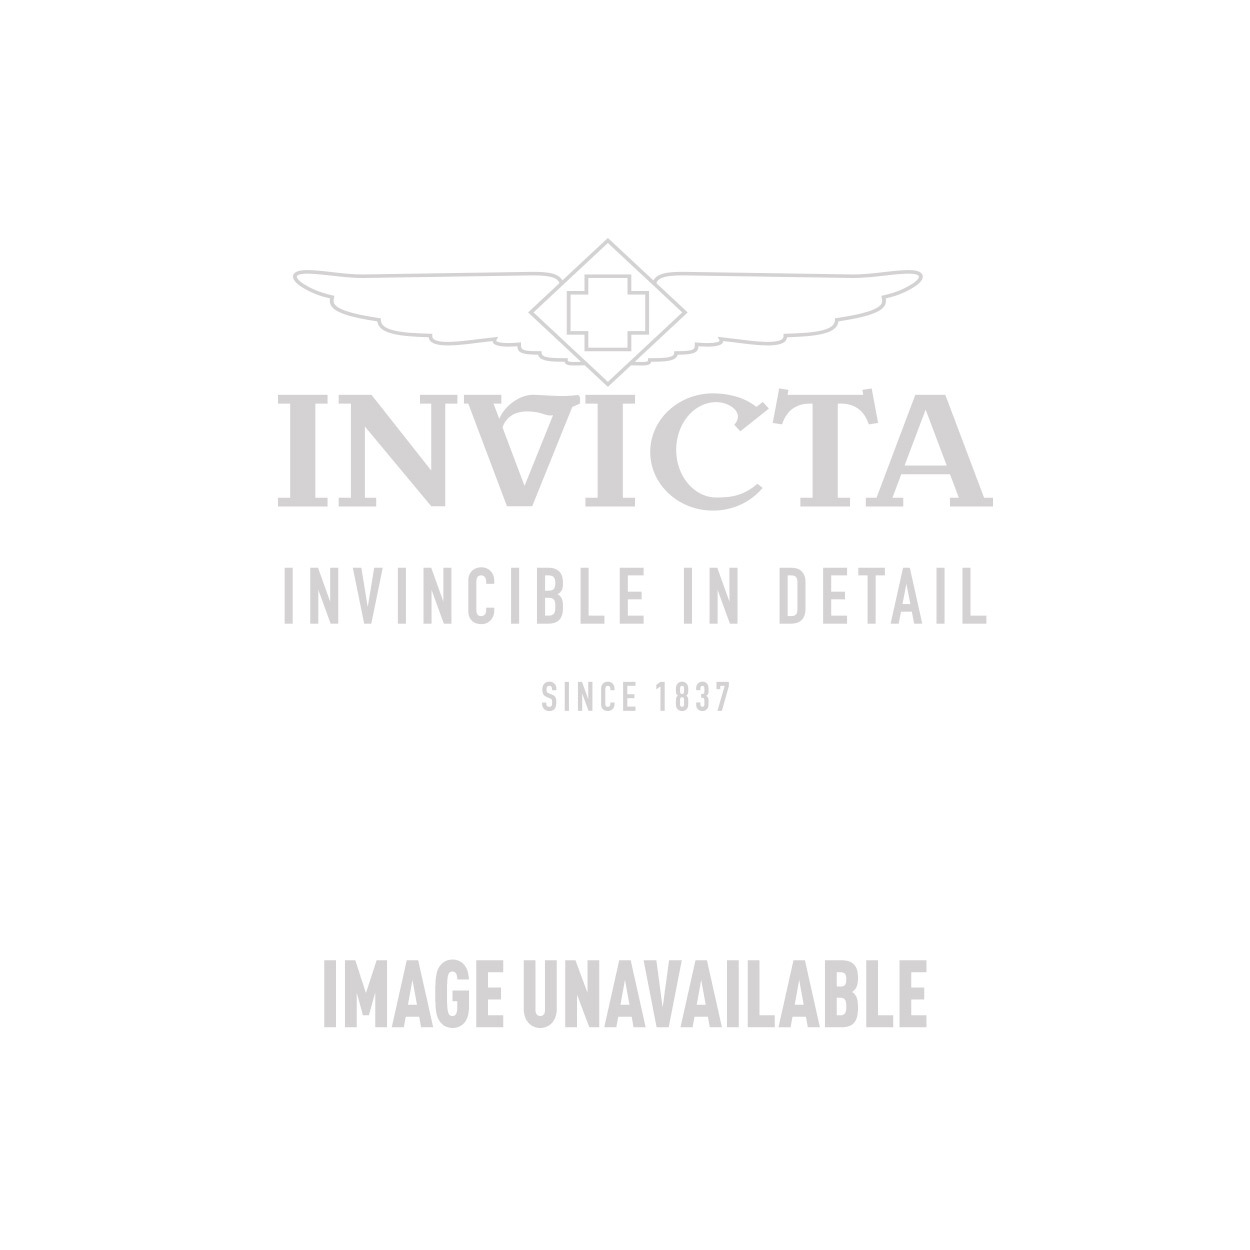 Invicta Speedway Quartz Watch - Stainless Steel case Stainless Steel band - Model 17023